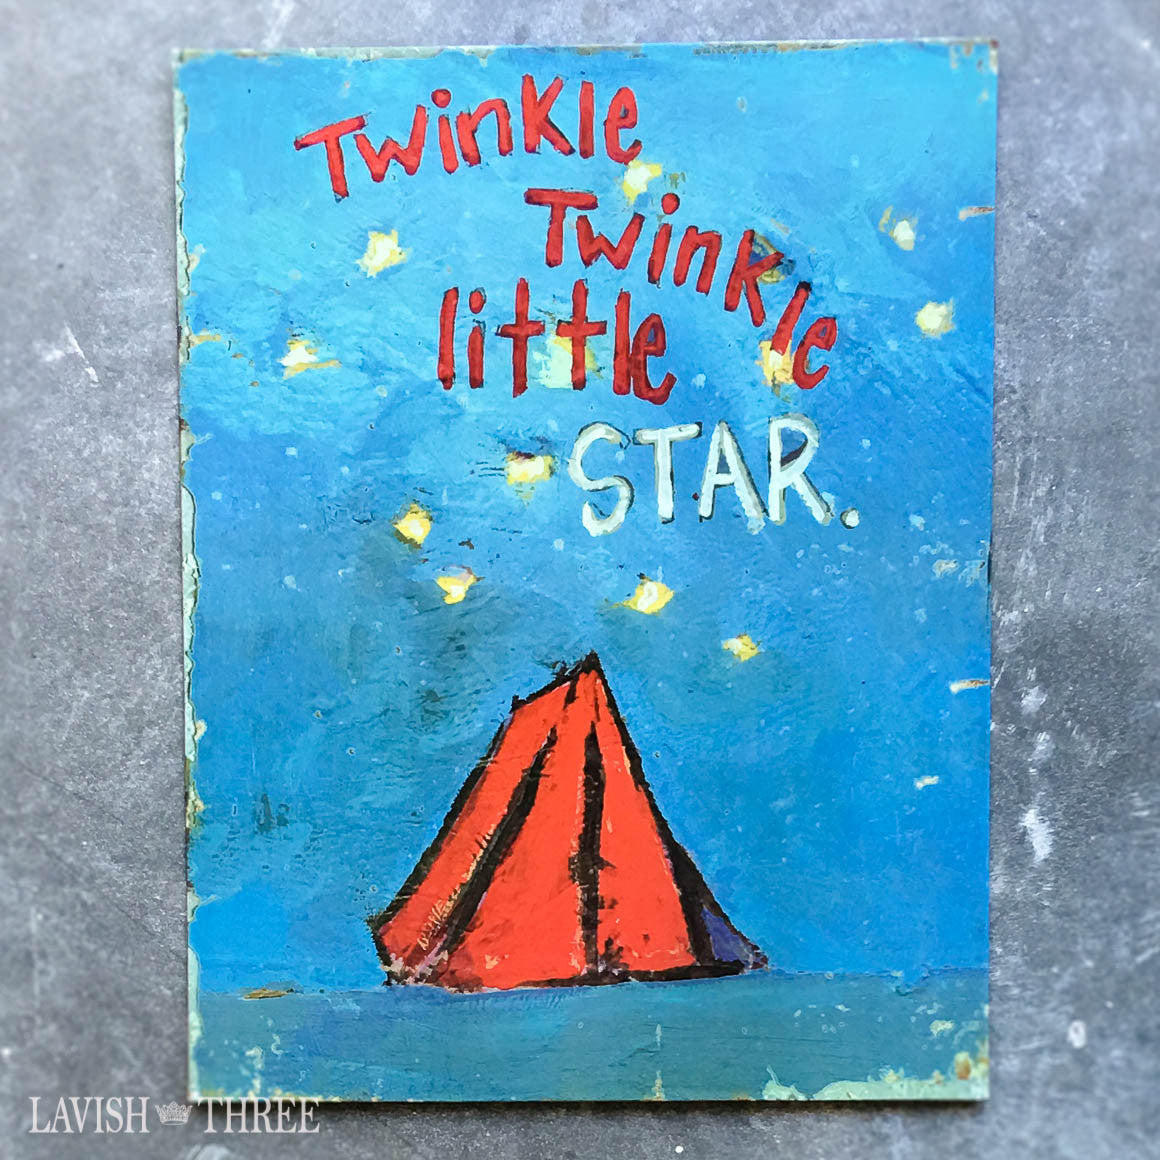 Twinkle twinkle little star blue white tin wall art sign childs room nursery decor